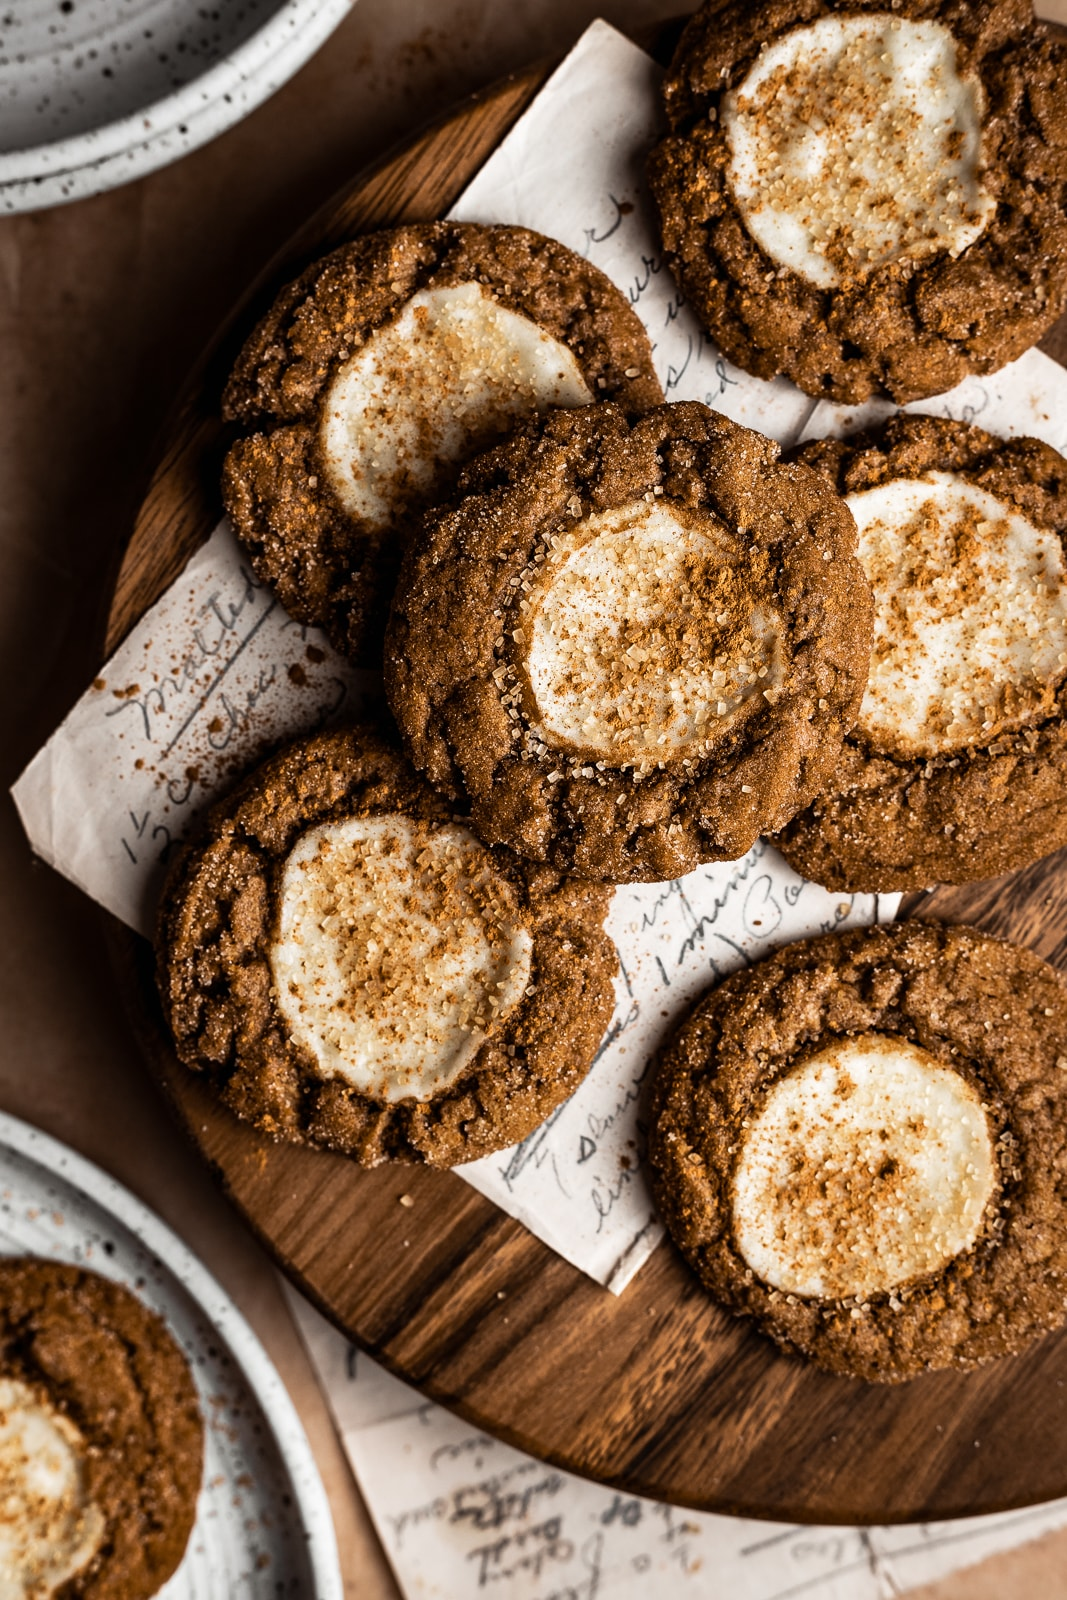 Pumpkin cream cheese cookies on a round wooden board